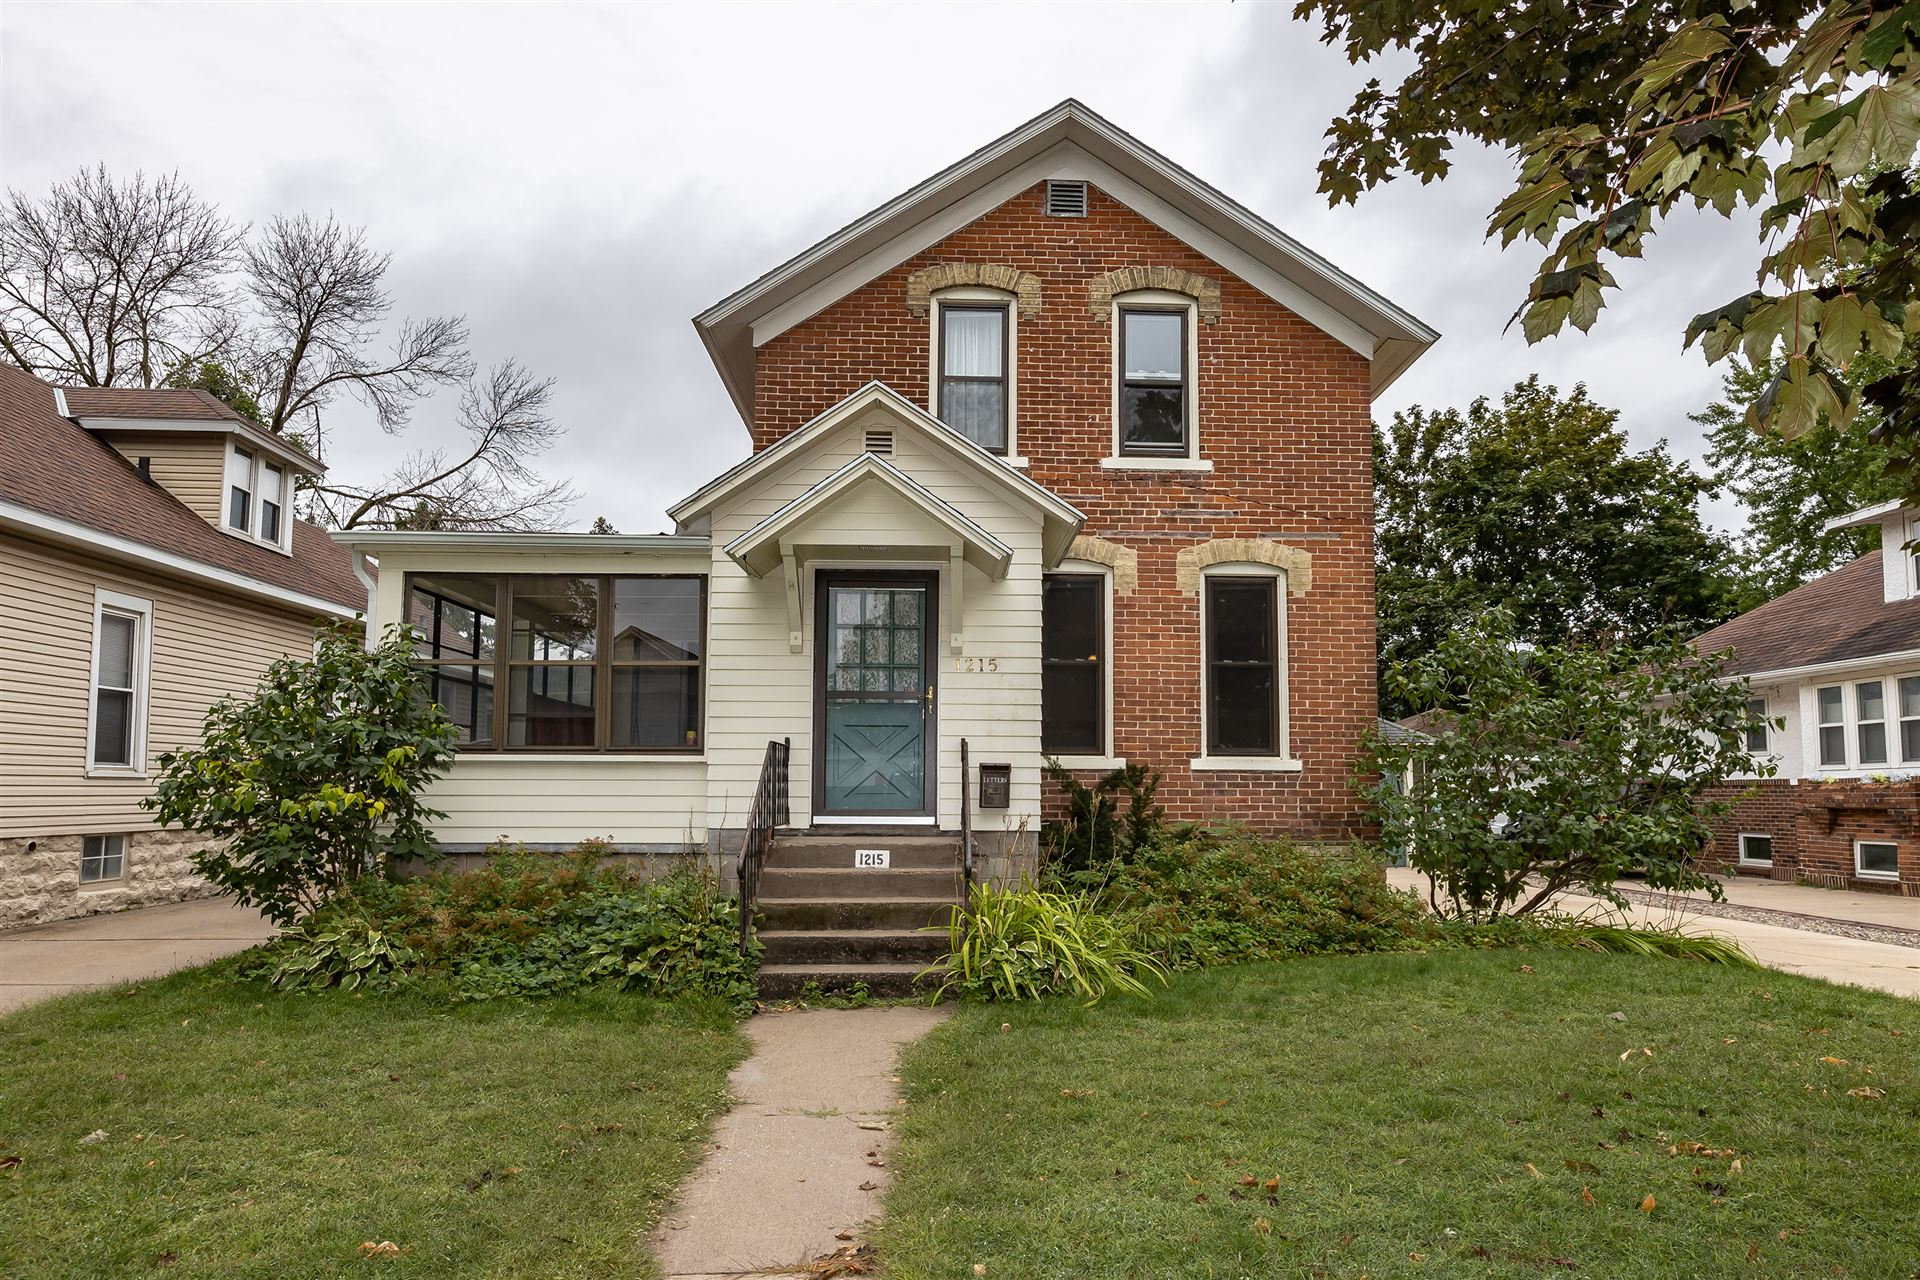 1215 W 6th Street, Winona, MN 55987 - MLS#: 5656639